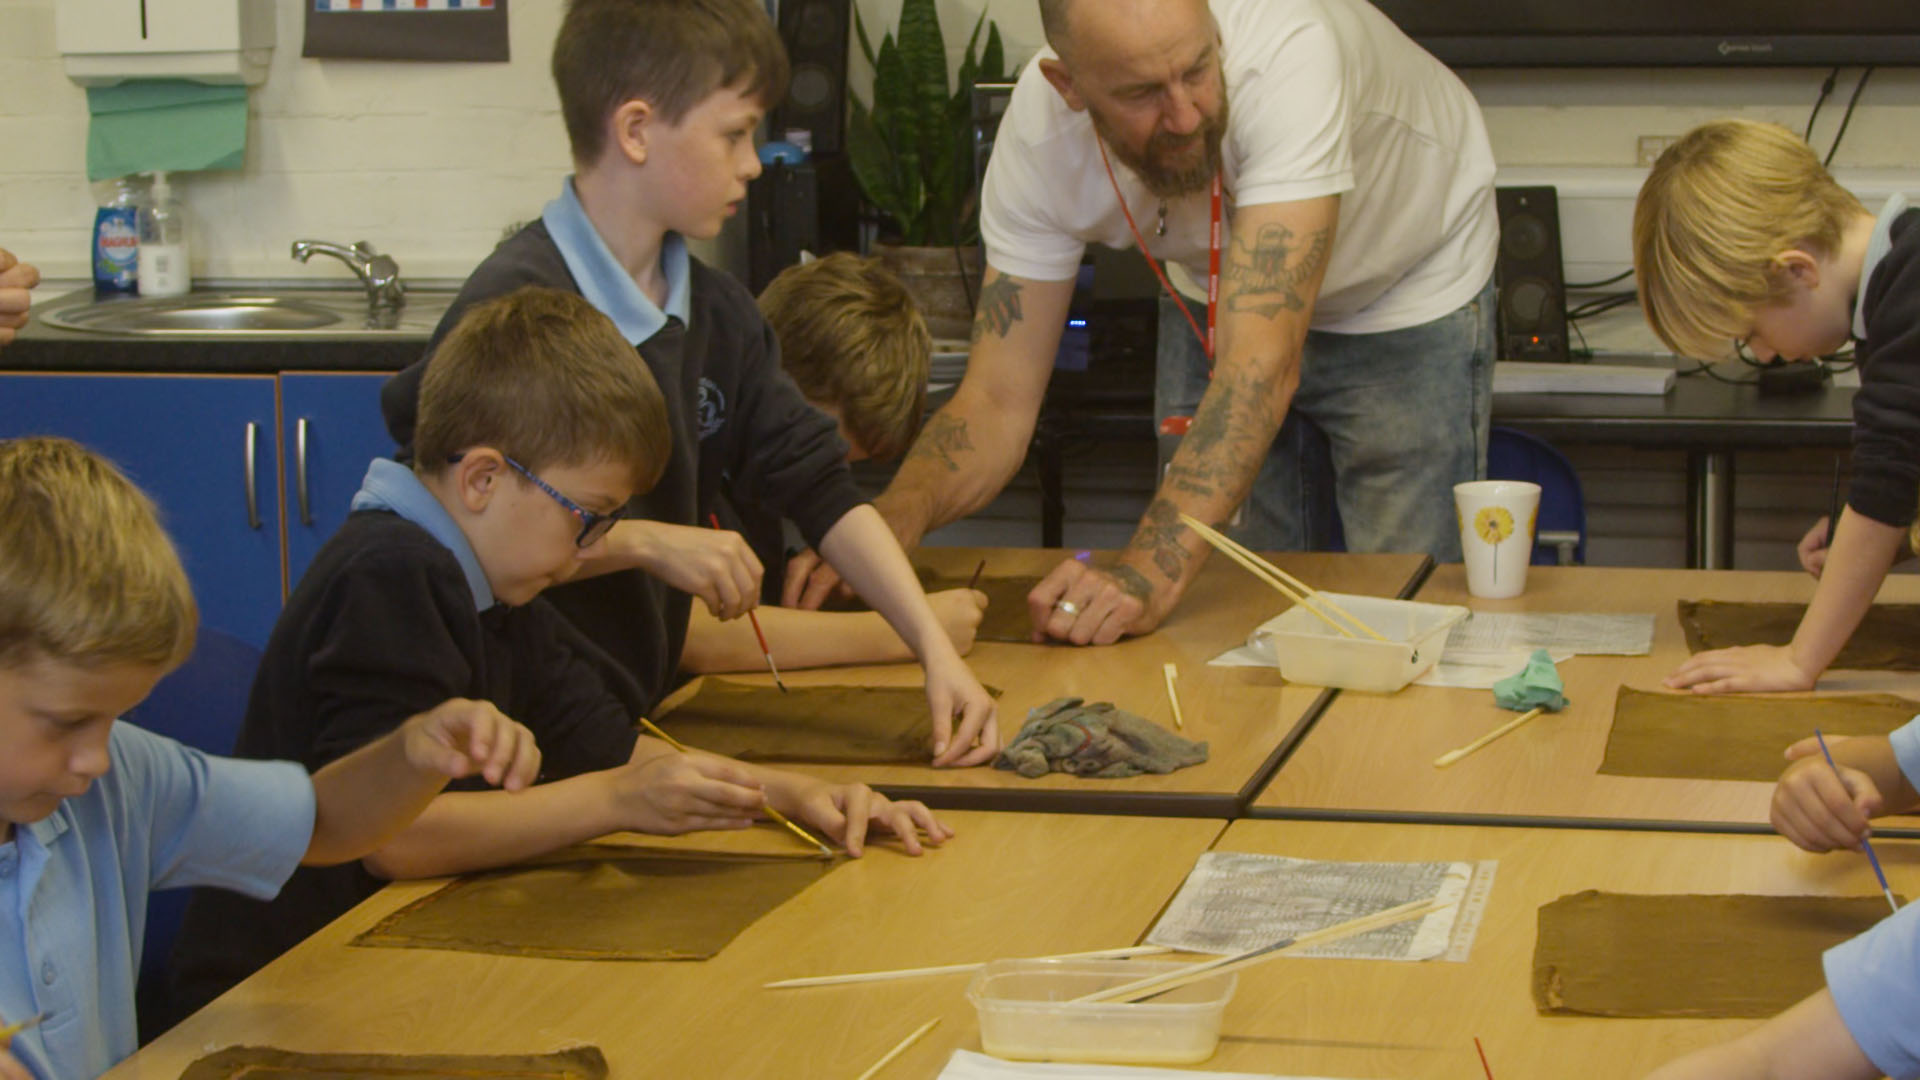 Teacher showing children how to draw out design for textile printing